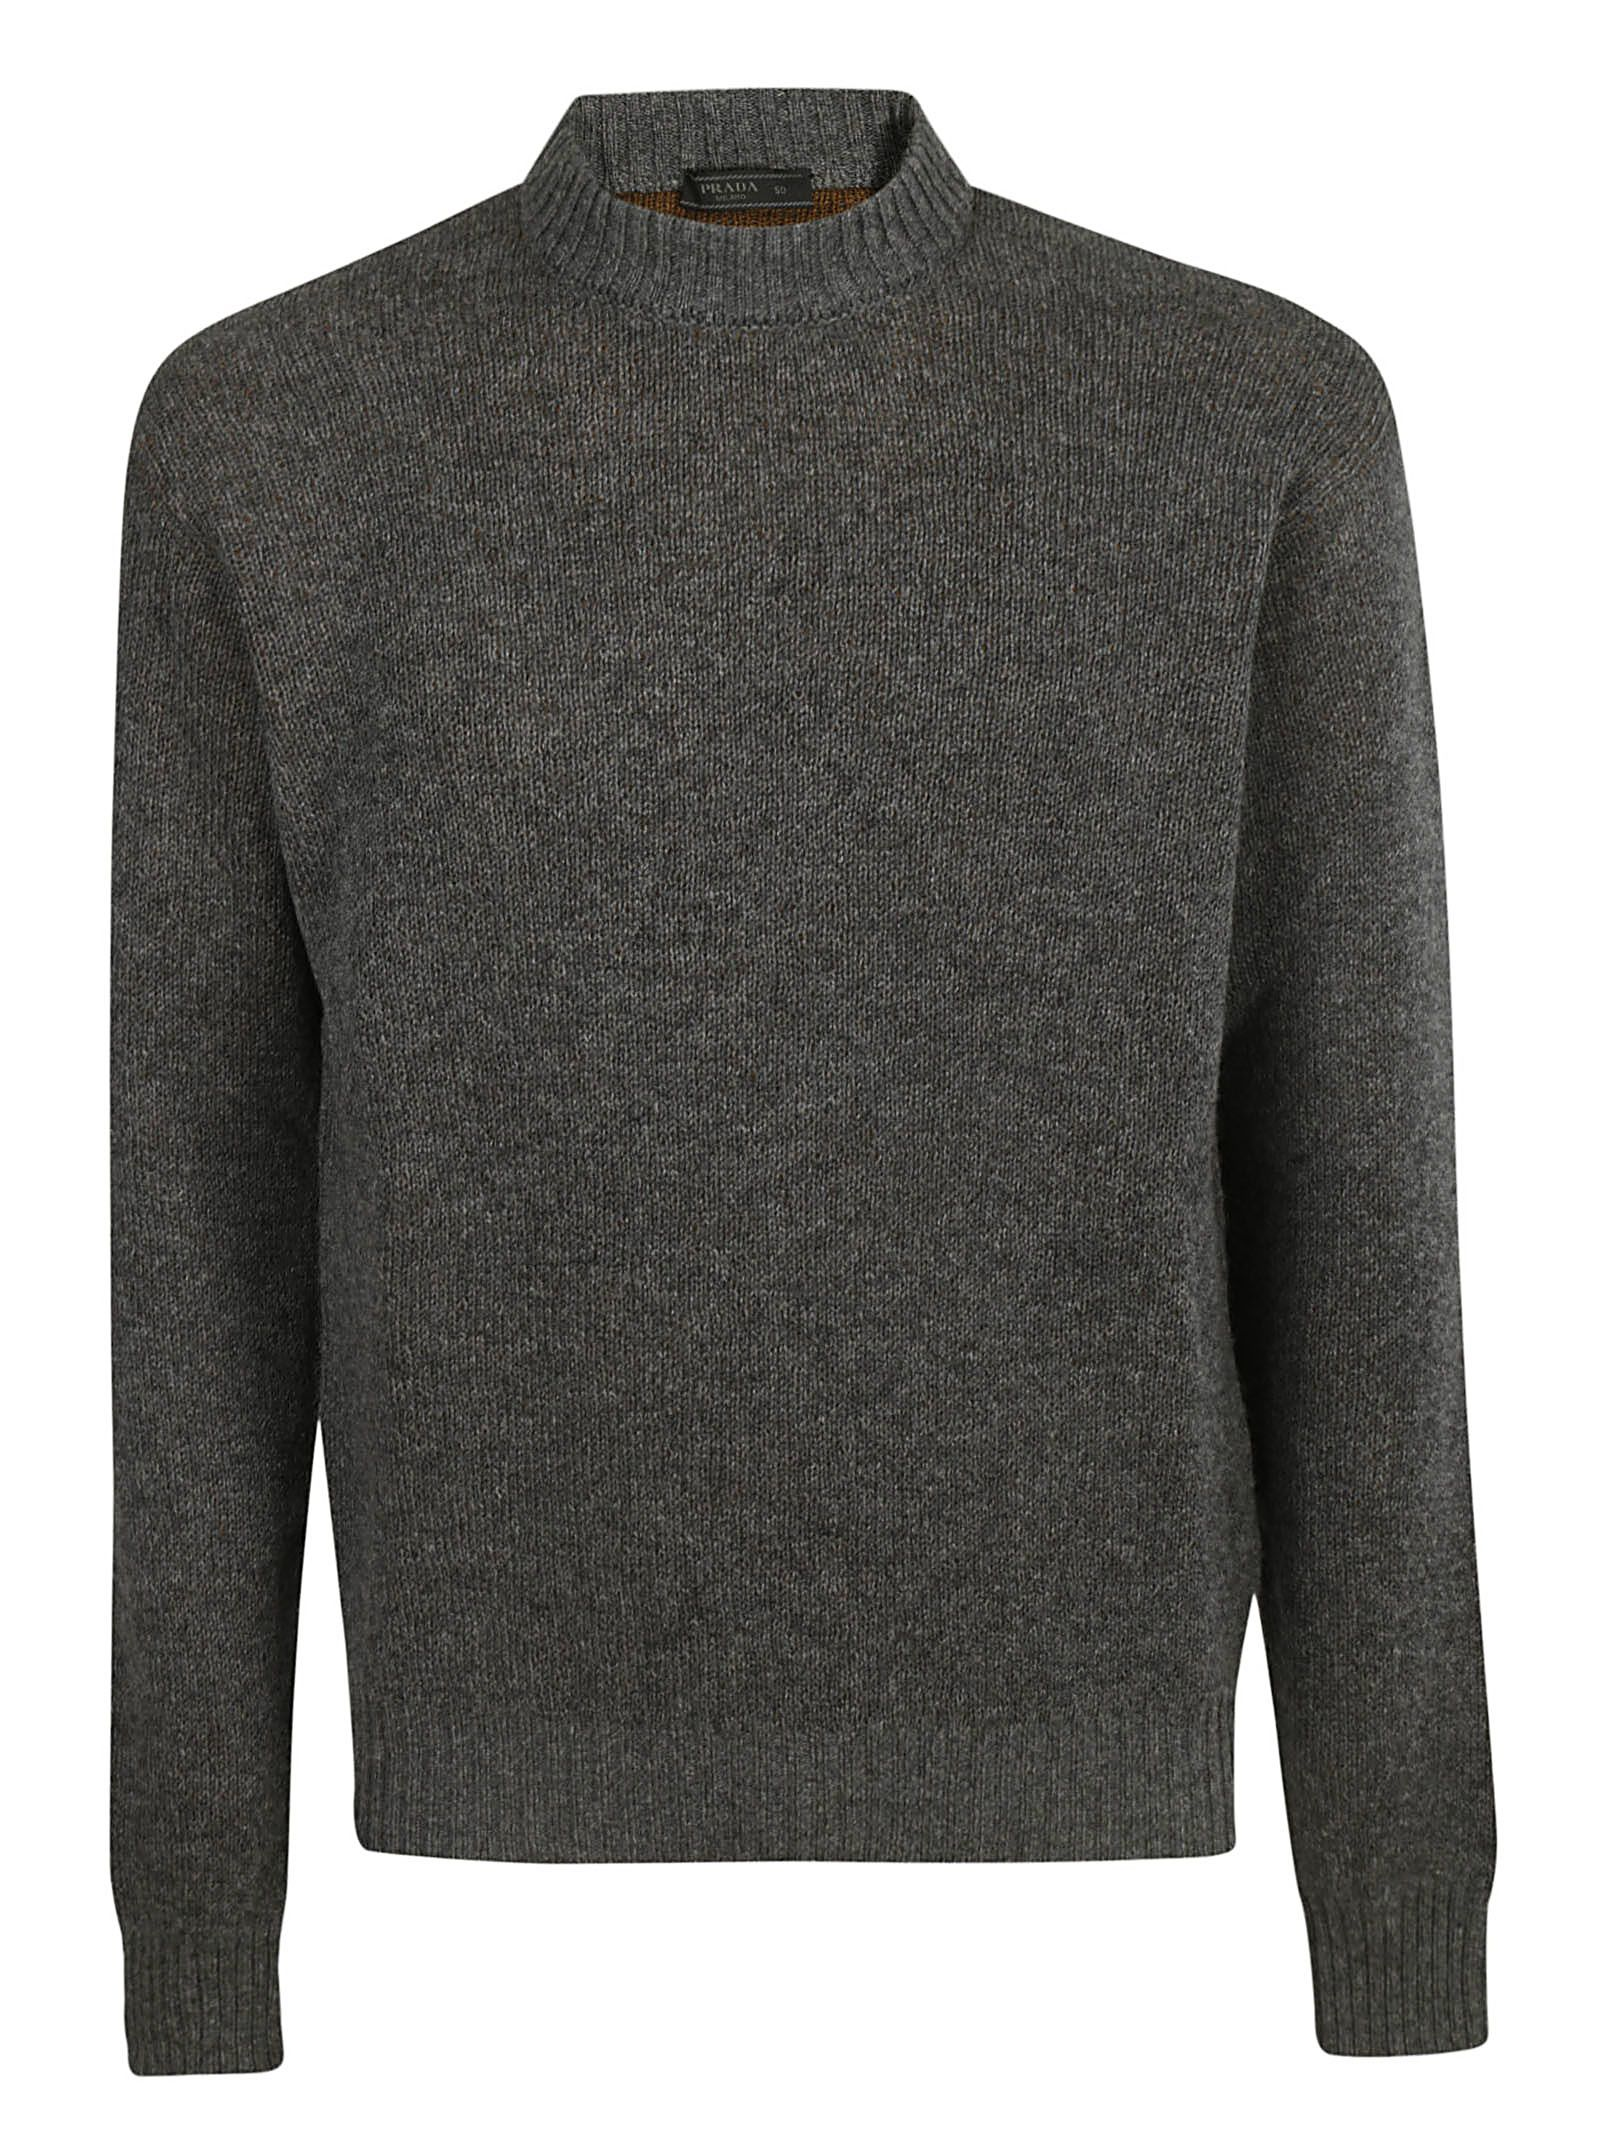 Prada Crew-neck Sweater